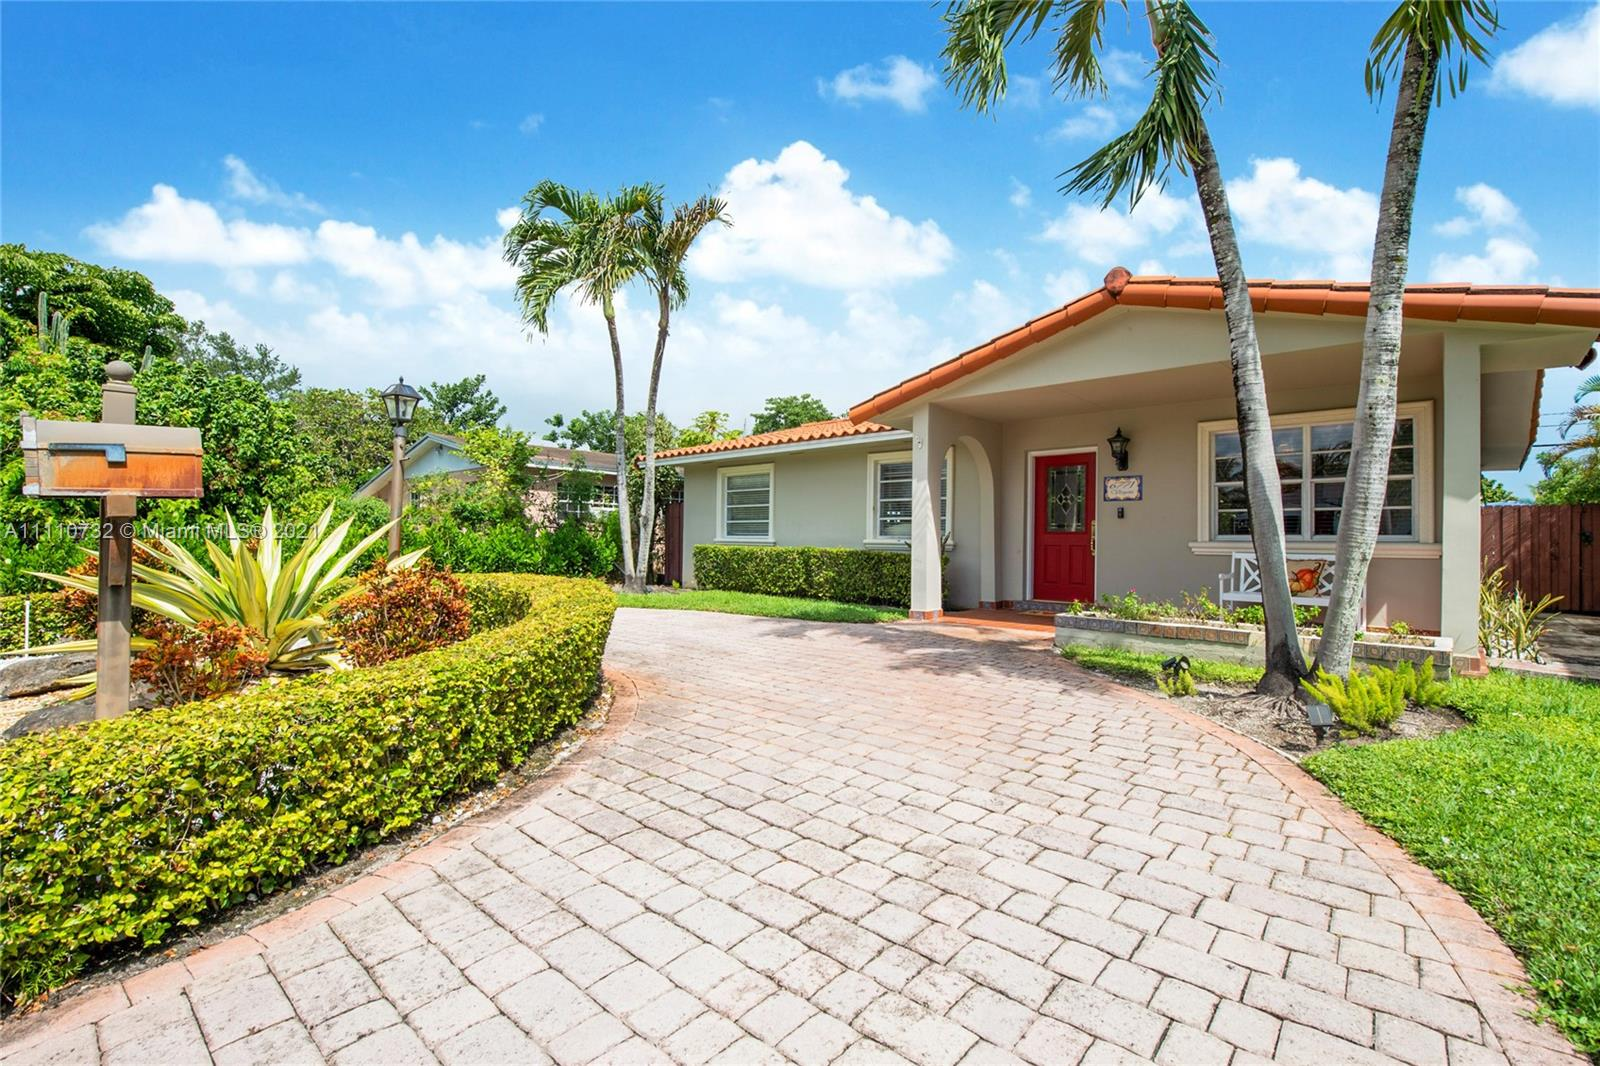 Single Family Home,For Sale,6771 N Waterway Dr, Miami, Florida 33155,Brickell,realty,broker,condos near me